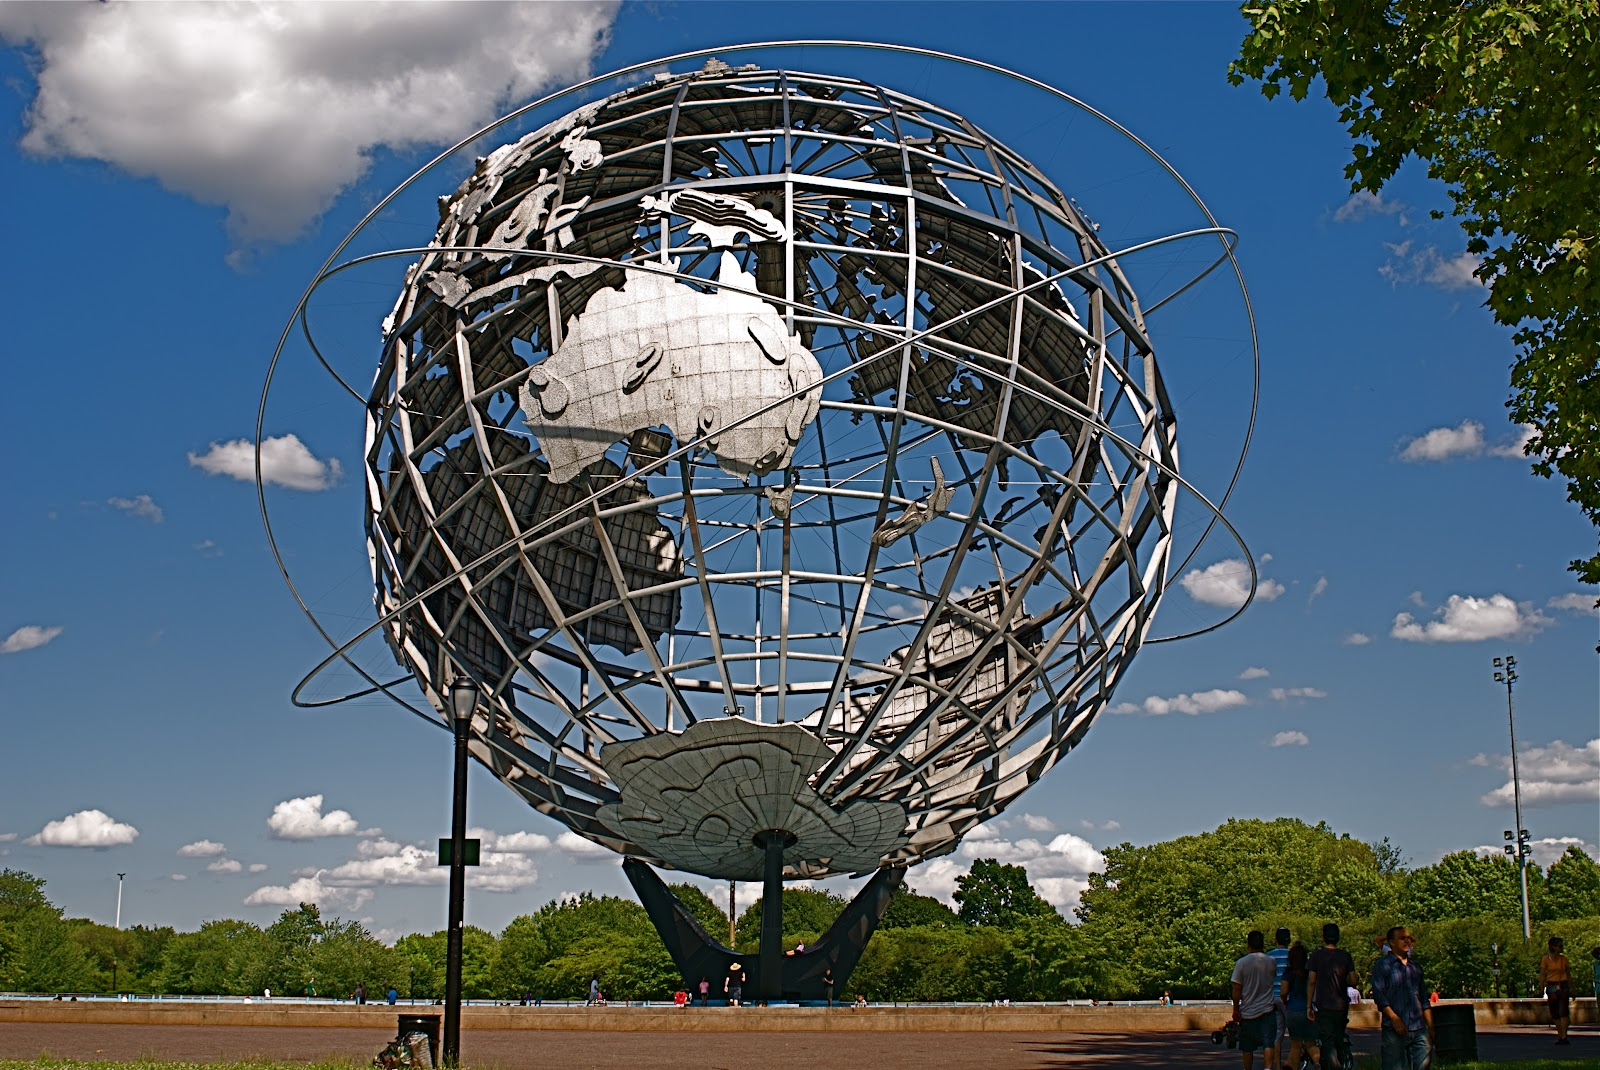 Nyc Nyc The Unisphere Of Flushing Meadows Corona Park